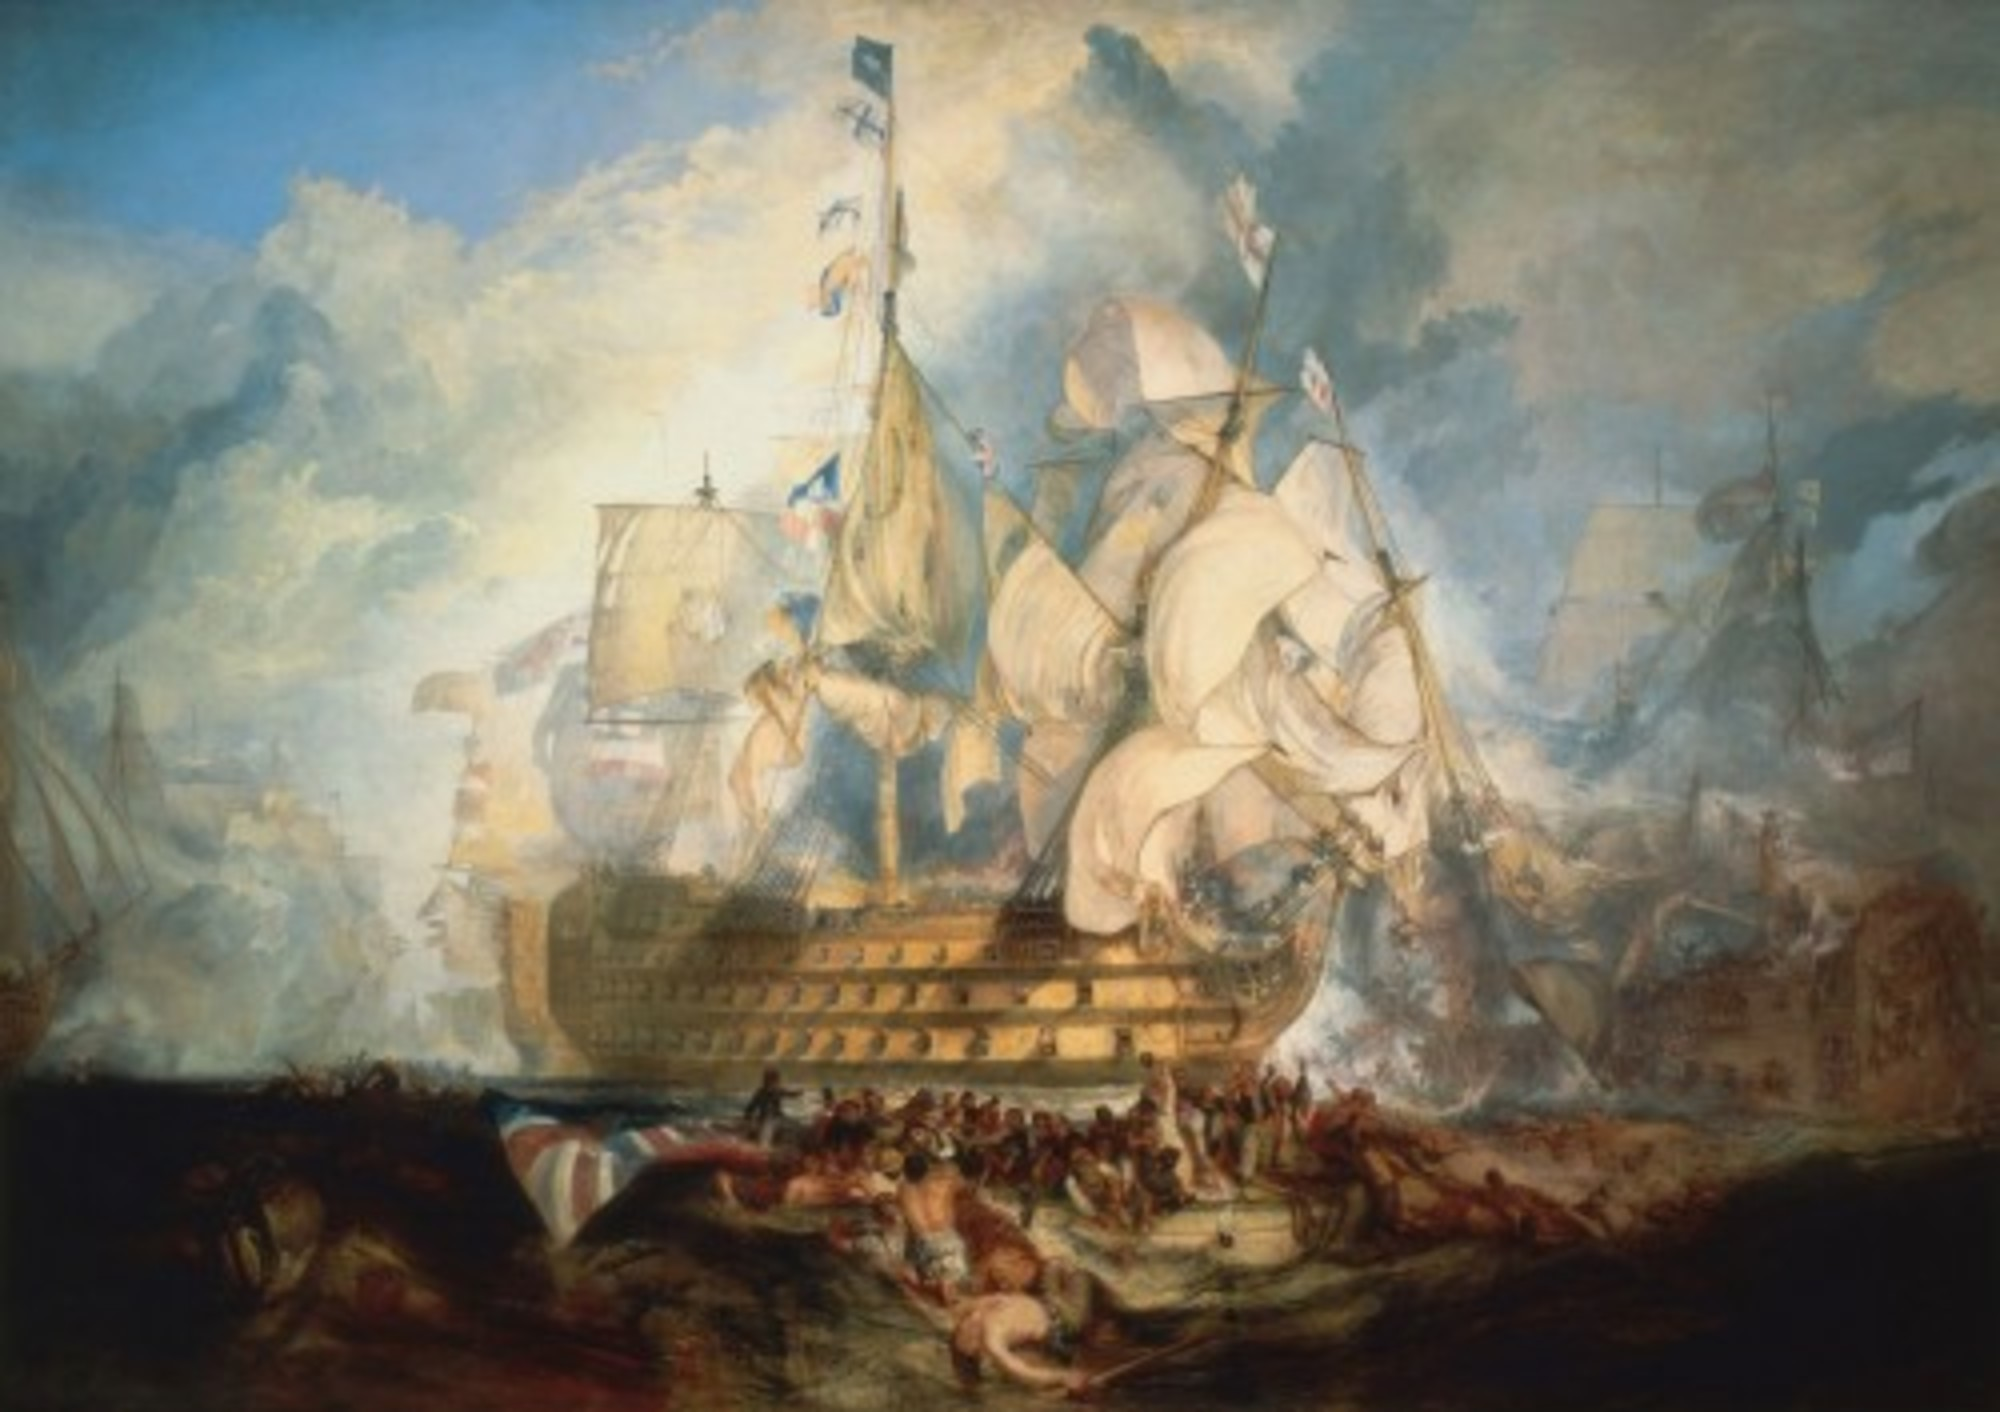 Turner-The-Battle-of-Trafalgar-1822.jpg